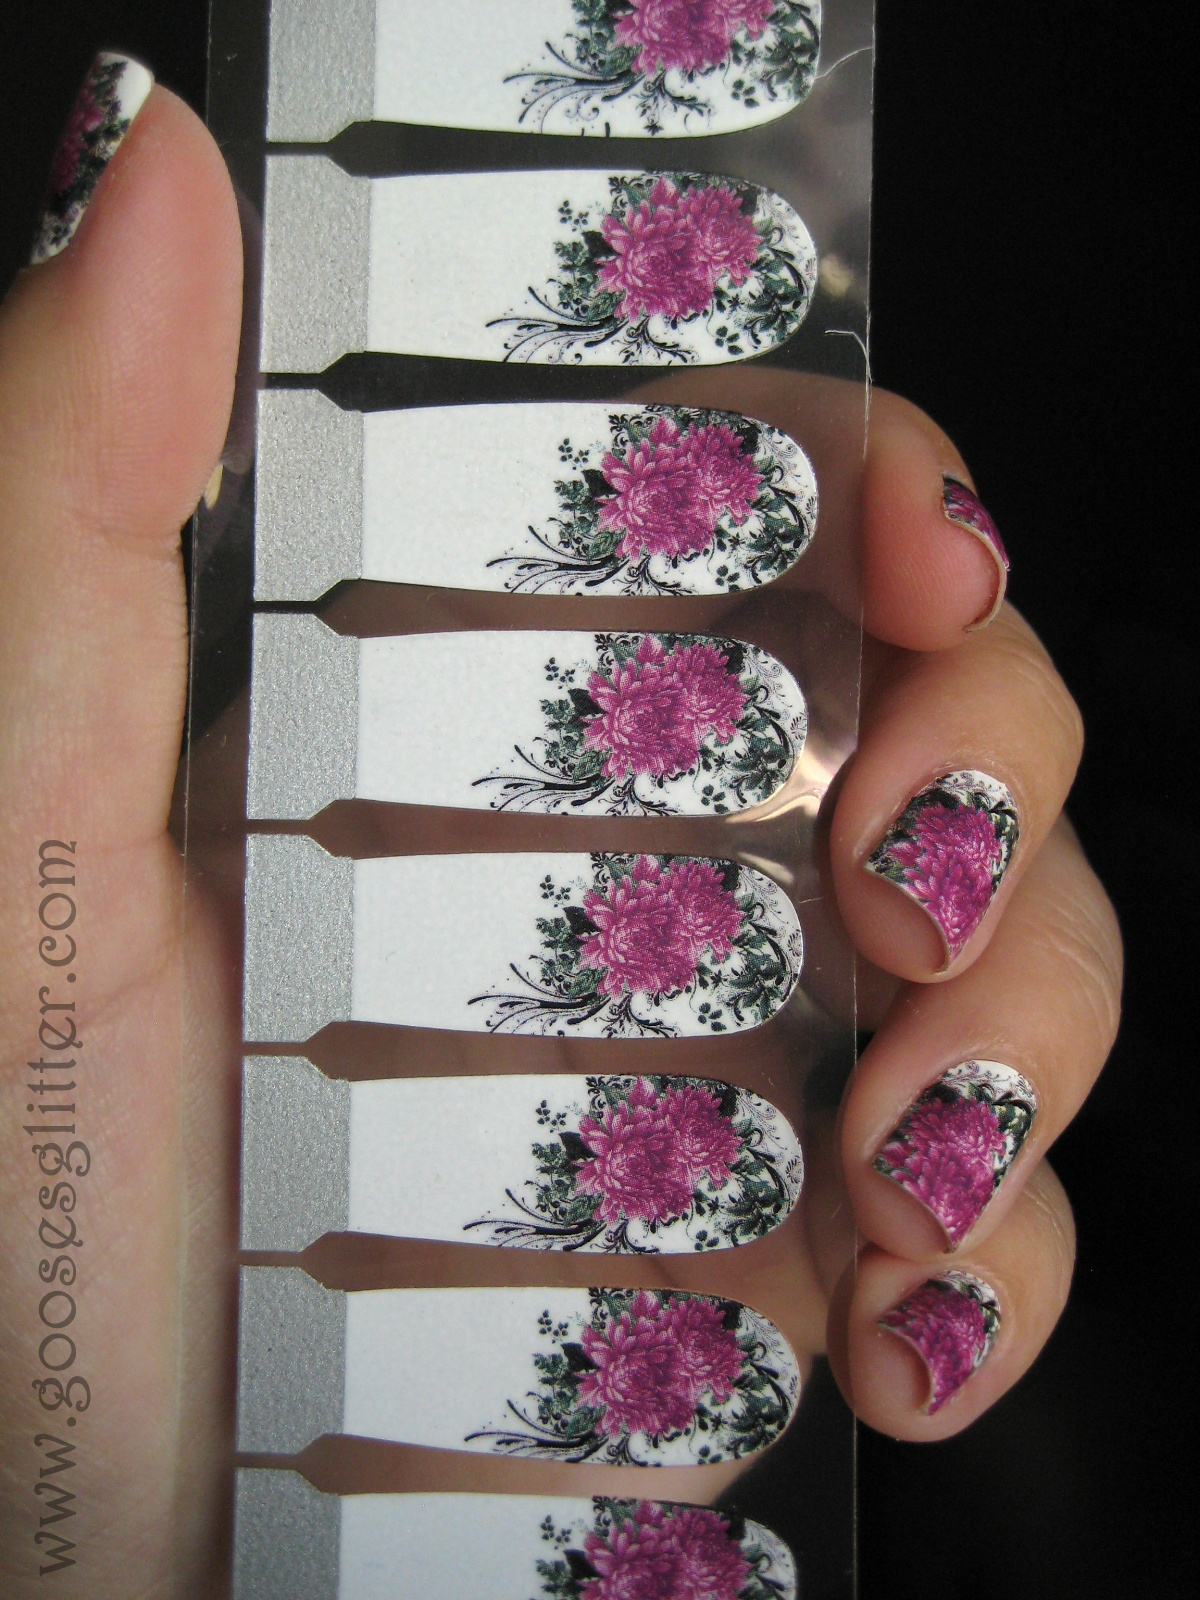 Goose\'s Glitter: KKCenterHK Nail Strips: Swatches and Review